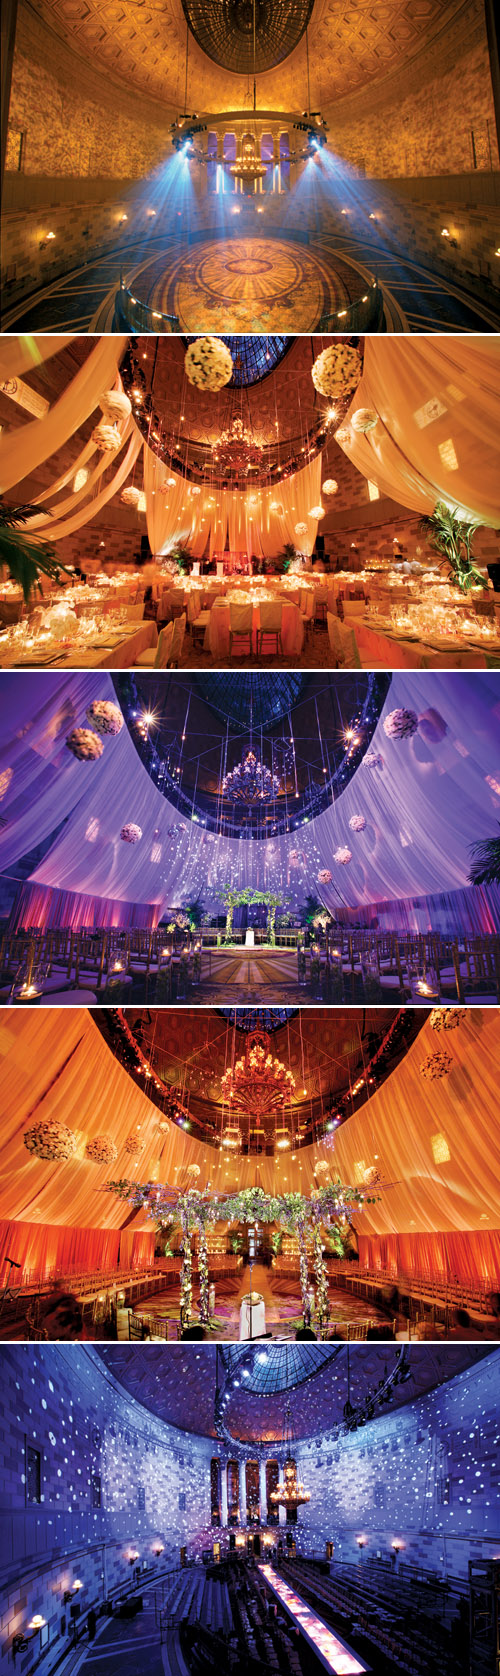 amazing wedding lighting design at Gotham Hall in New York by Bentley Meeker from his Light X Design book